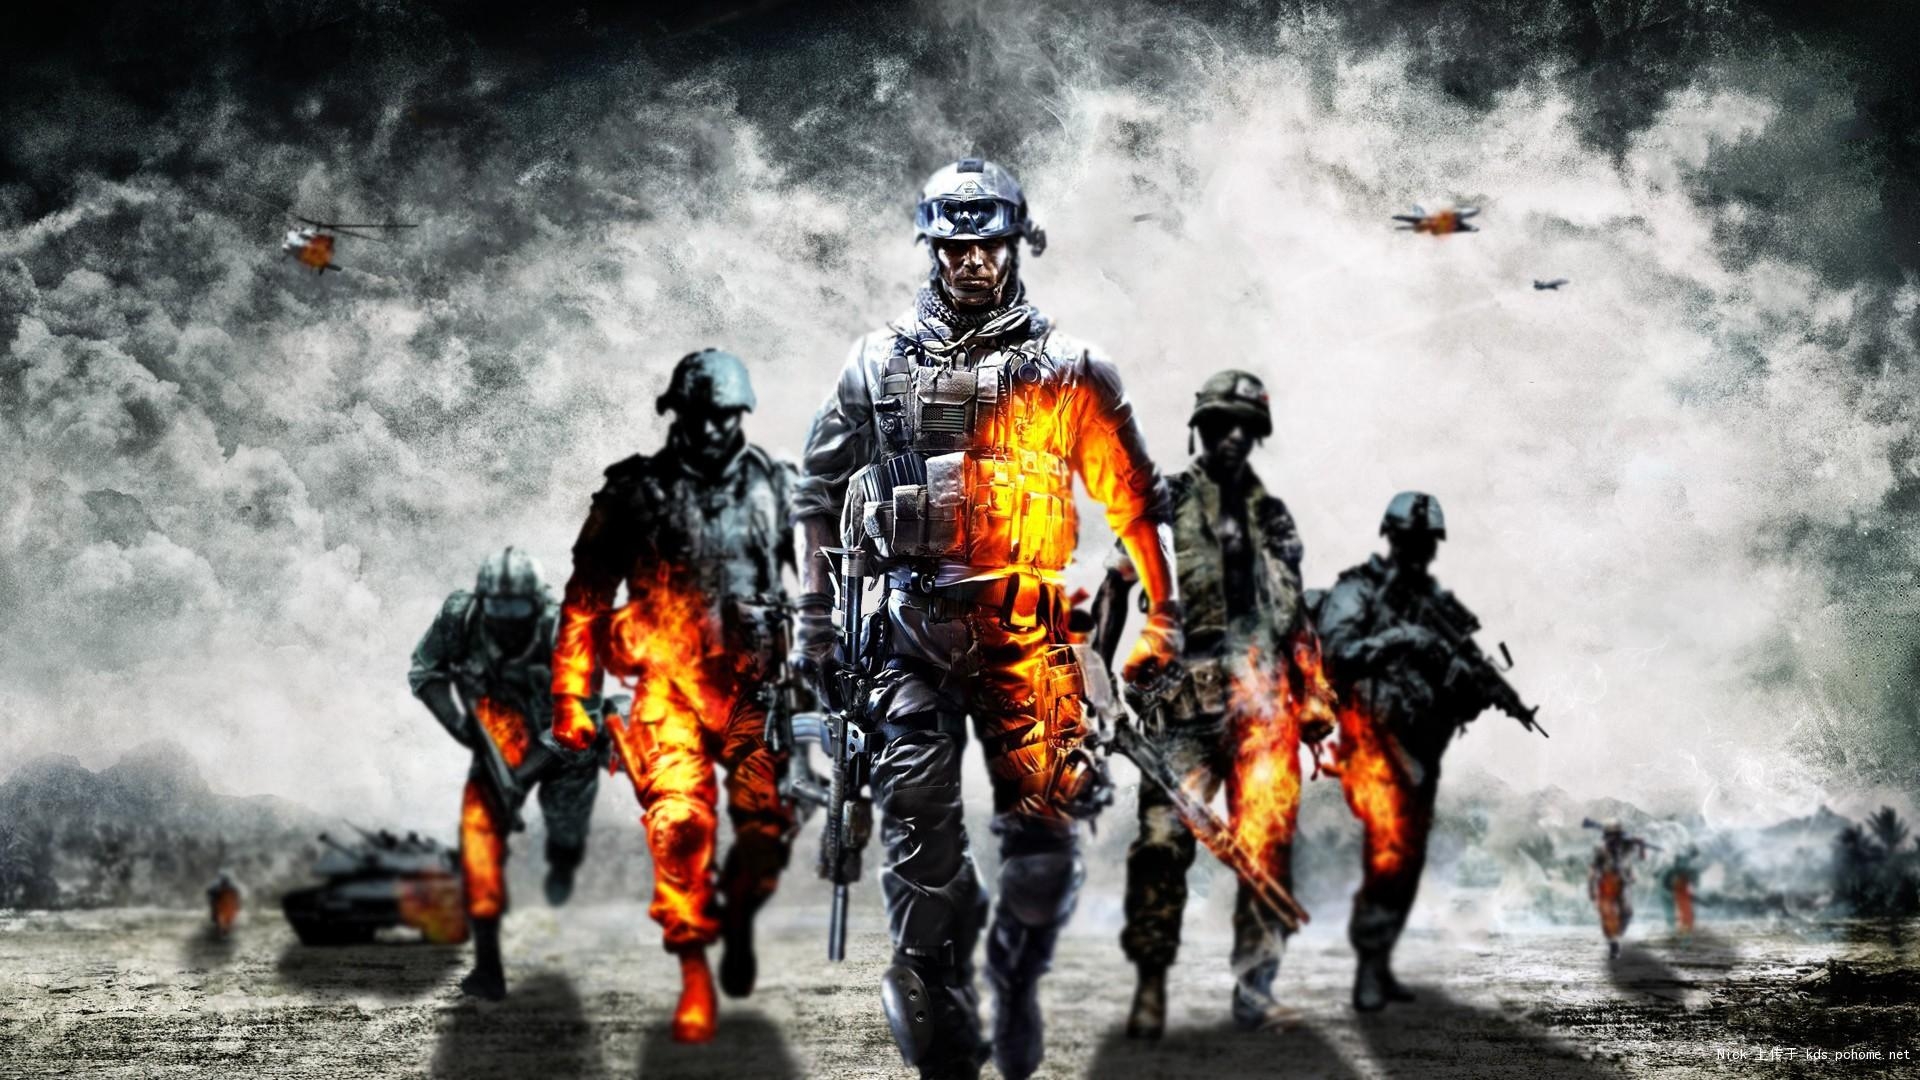 Battlefield 4 Games Wallpaper HD 1920x1080 ImageBankbiz 1920x1080